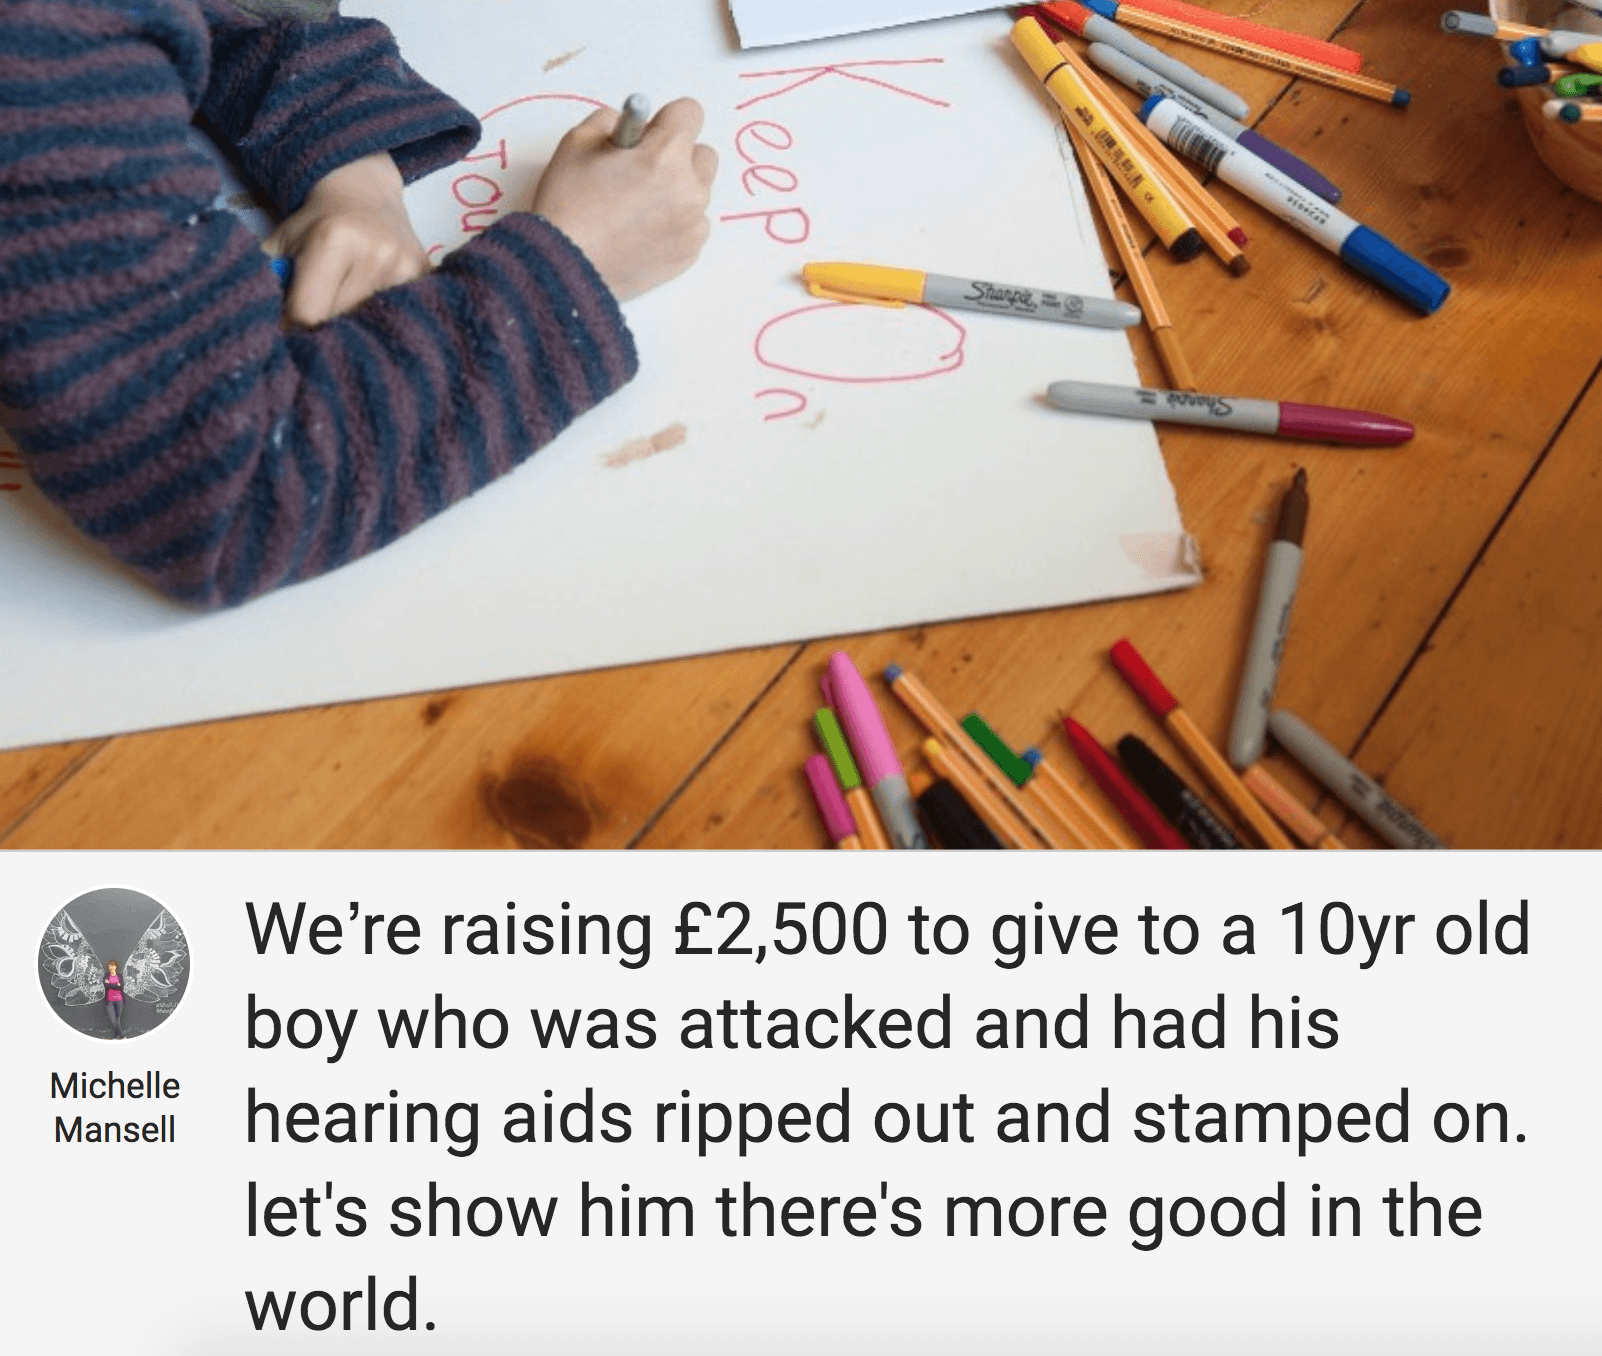 A call to raise some money so that the boy can replace his destroyed hearing aids